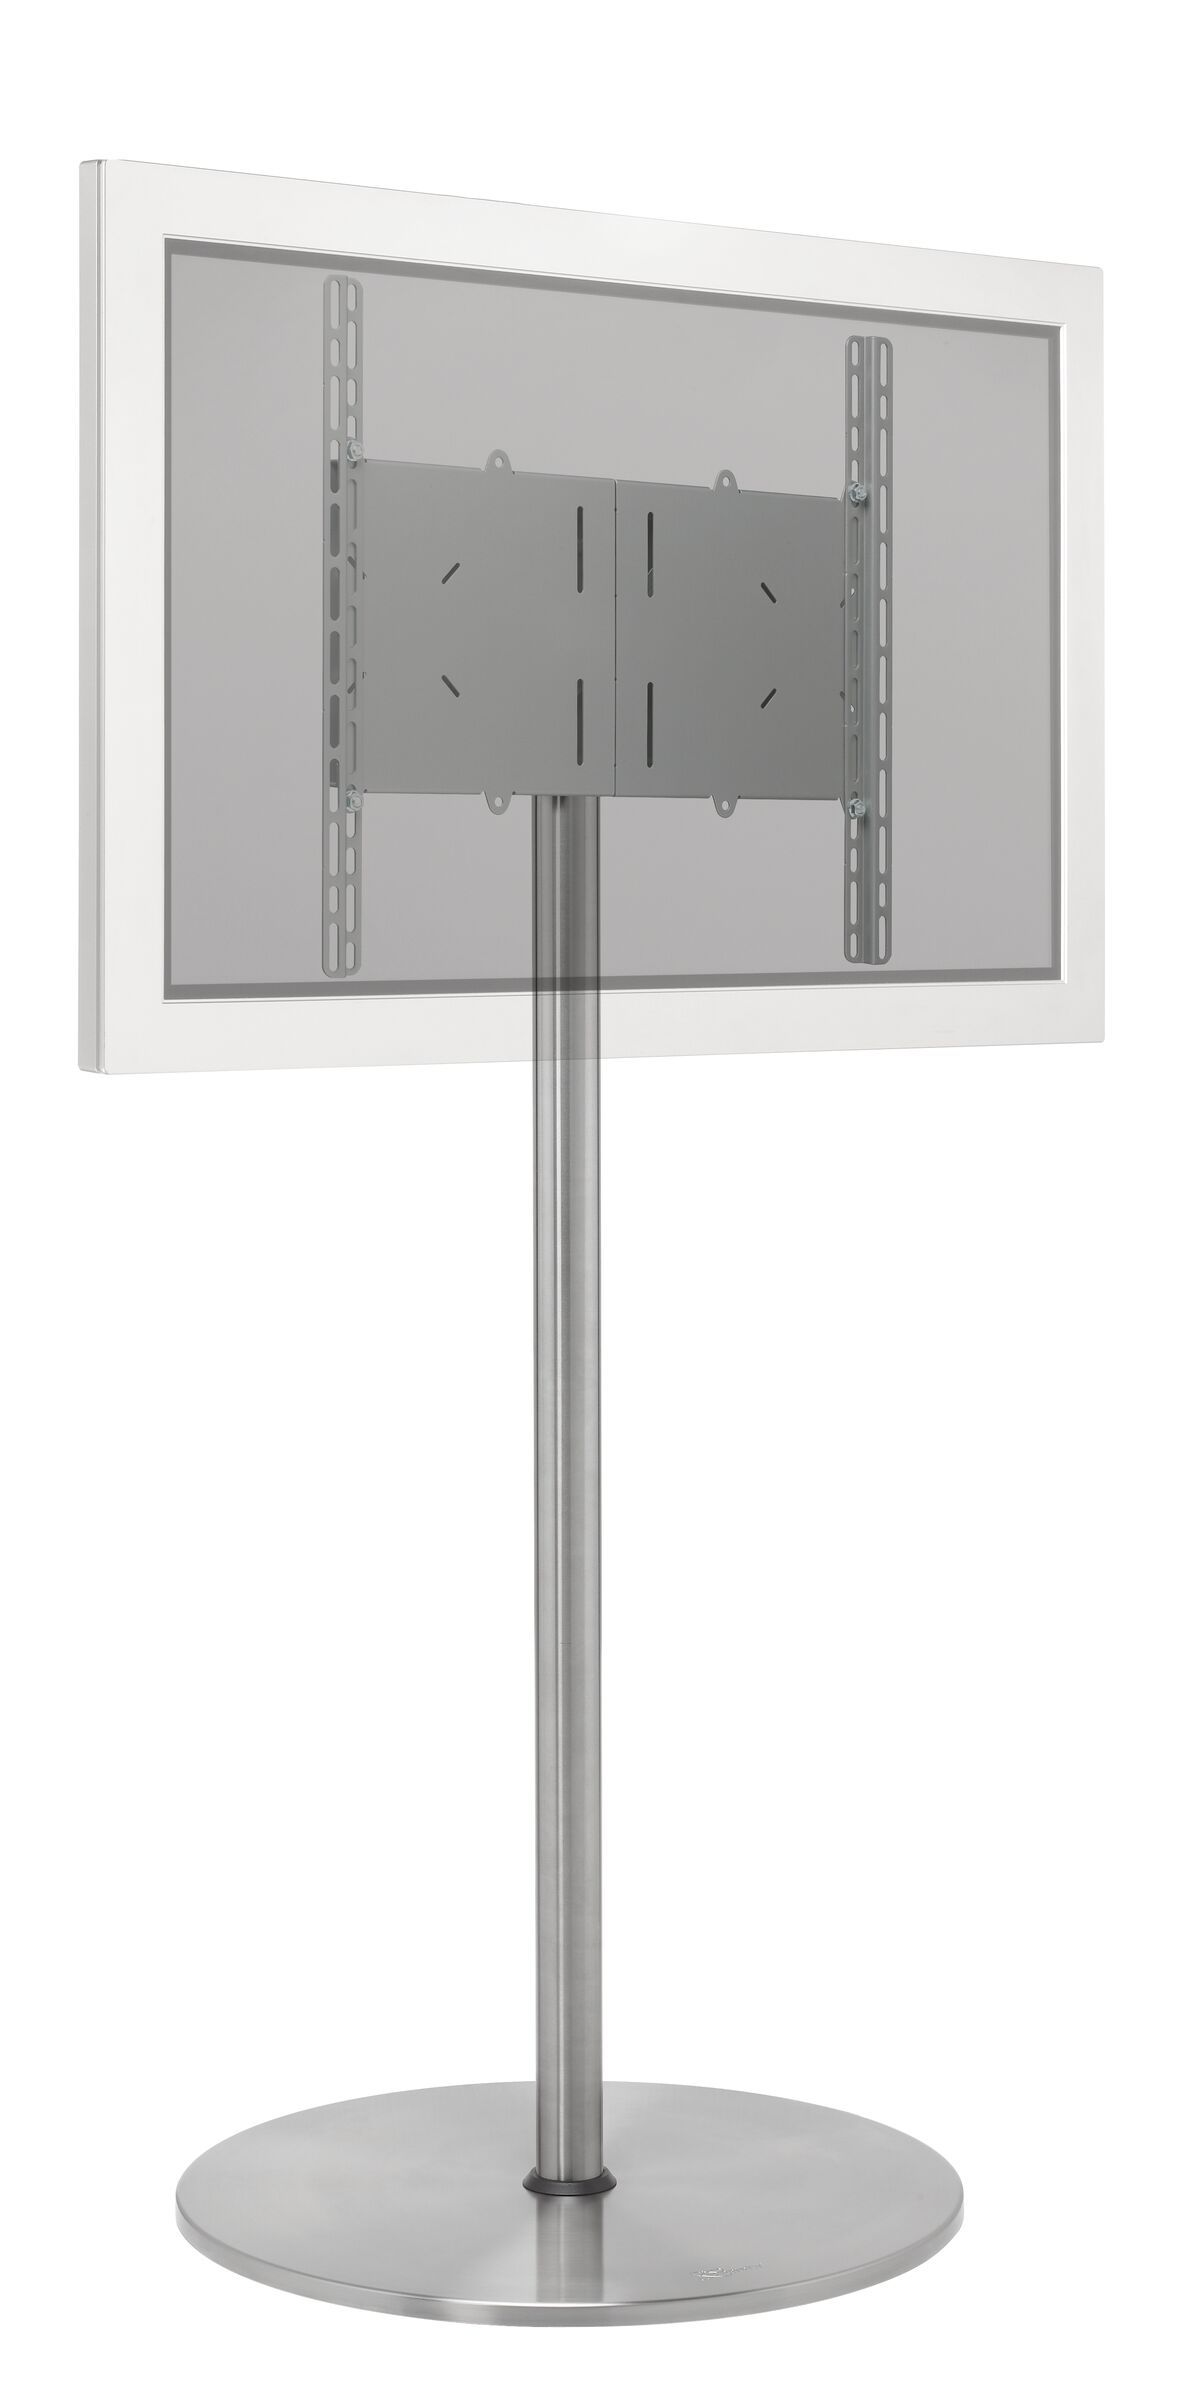 Vogel's PFF 1570 Display floor stand - Application